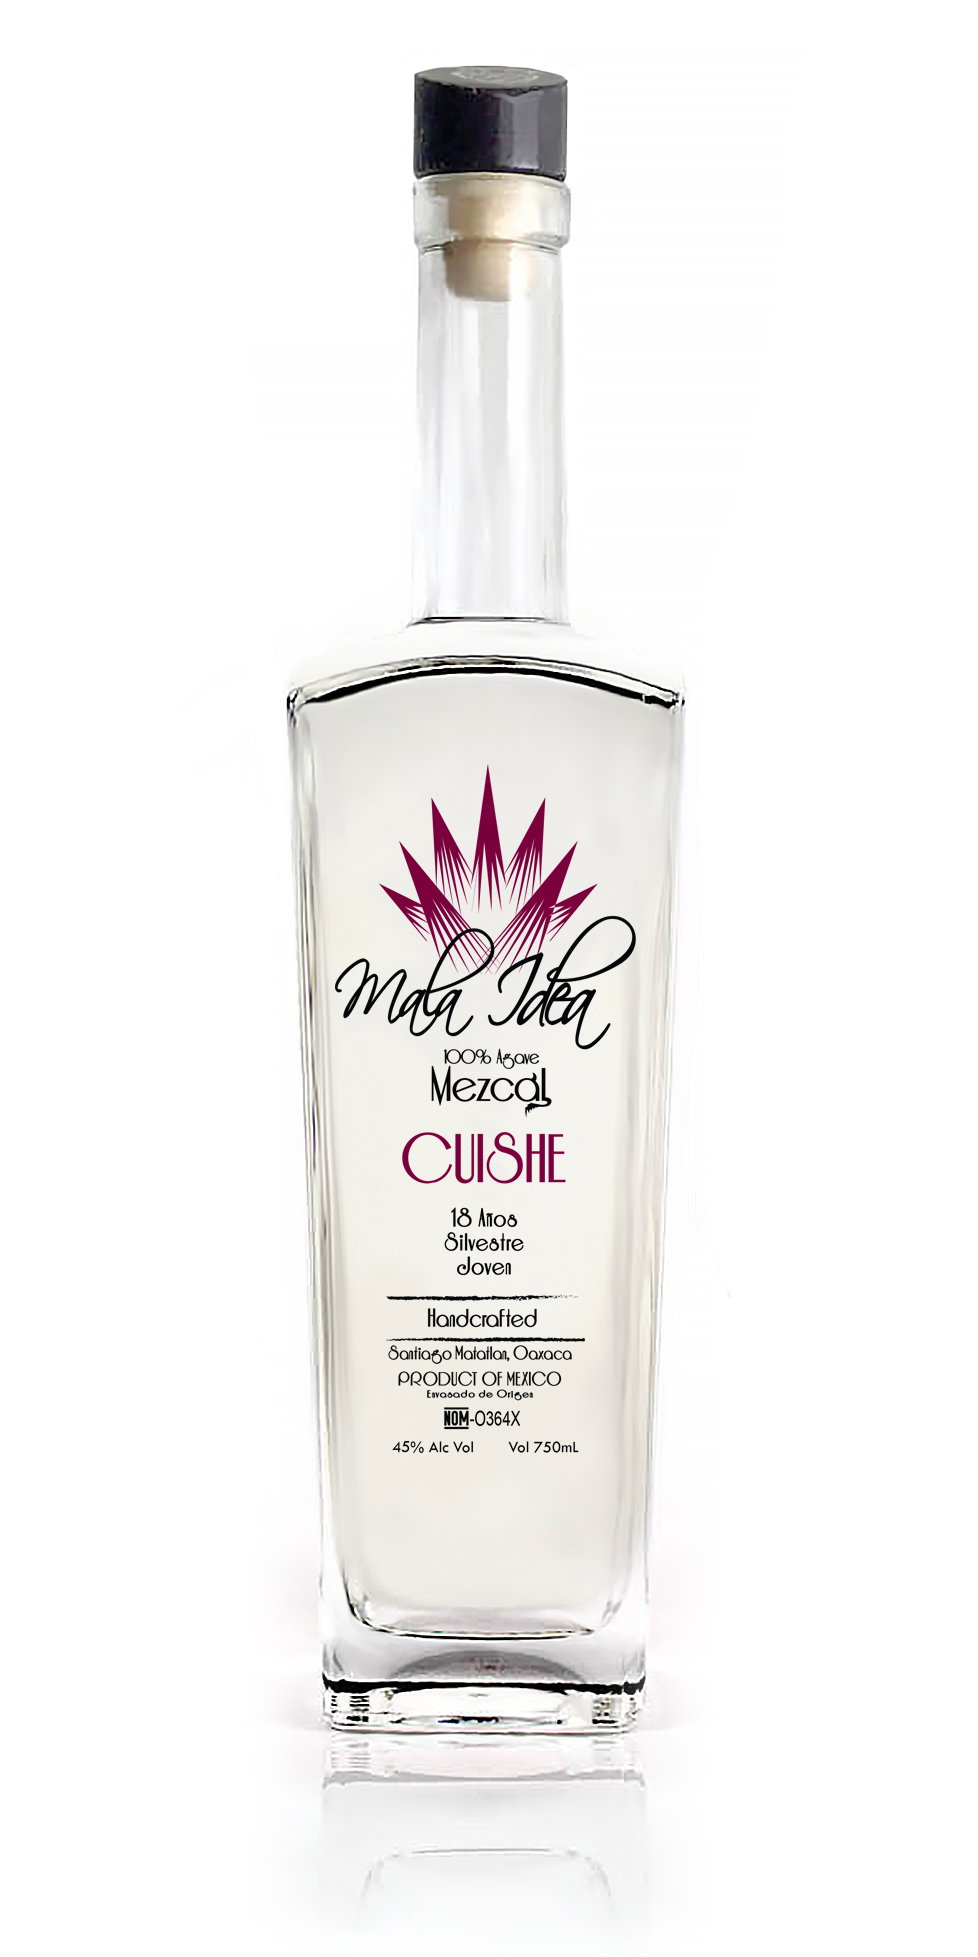 Mezcal Mala Idea Cuishe 18 Years